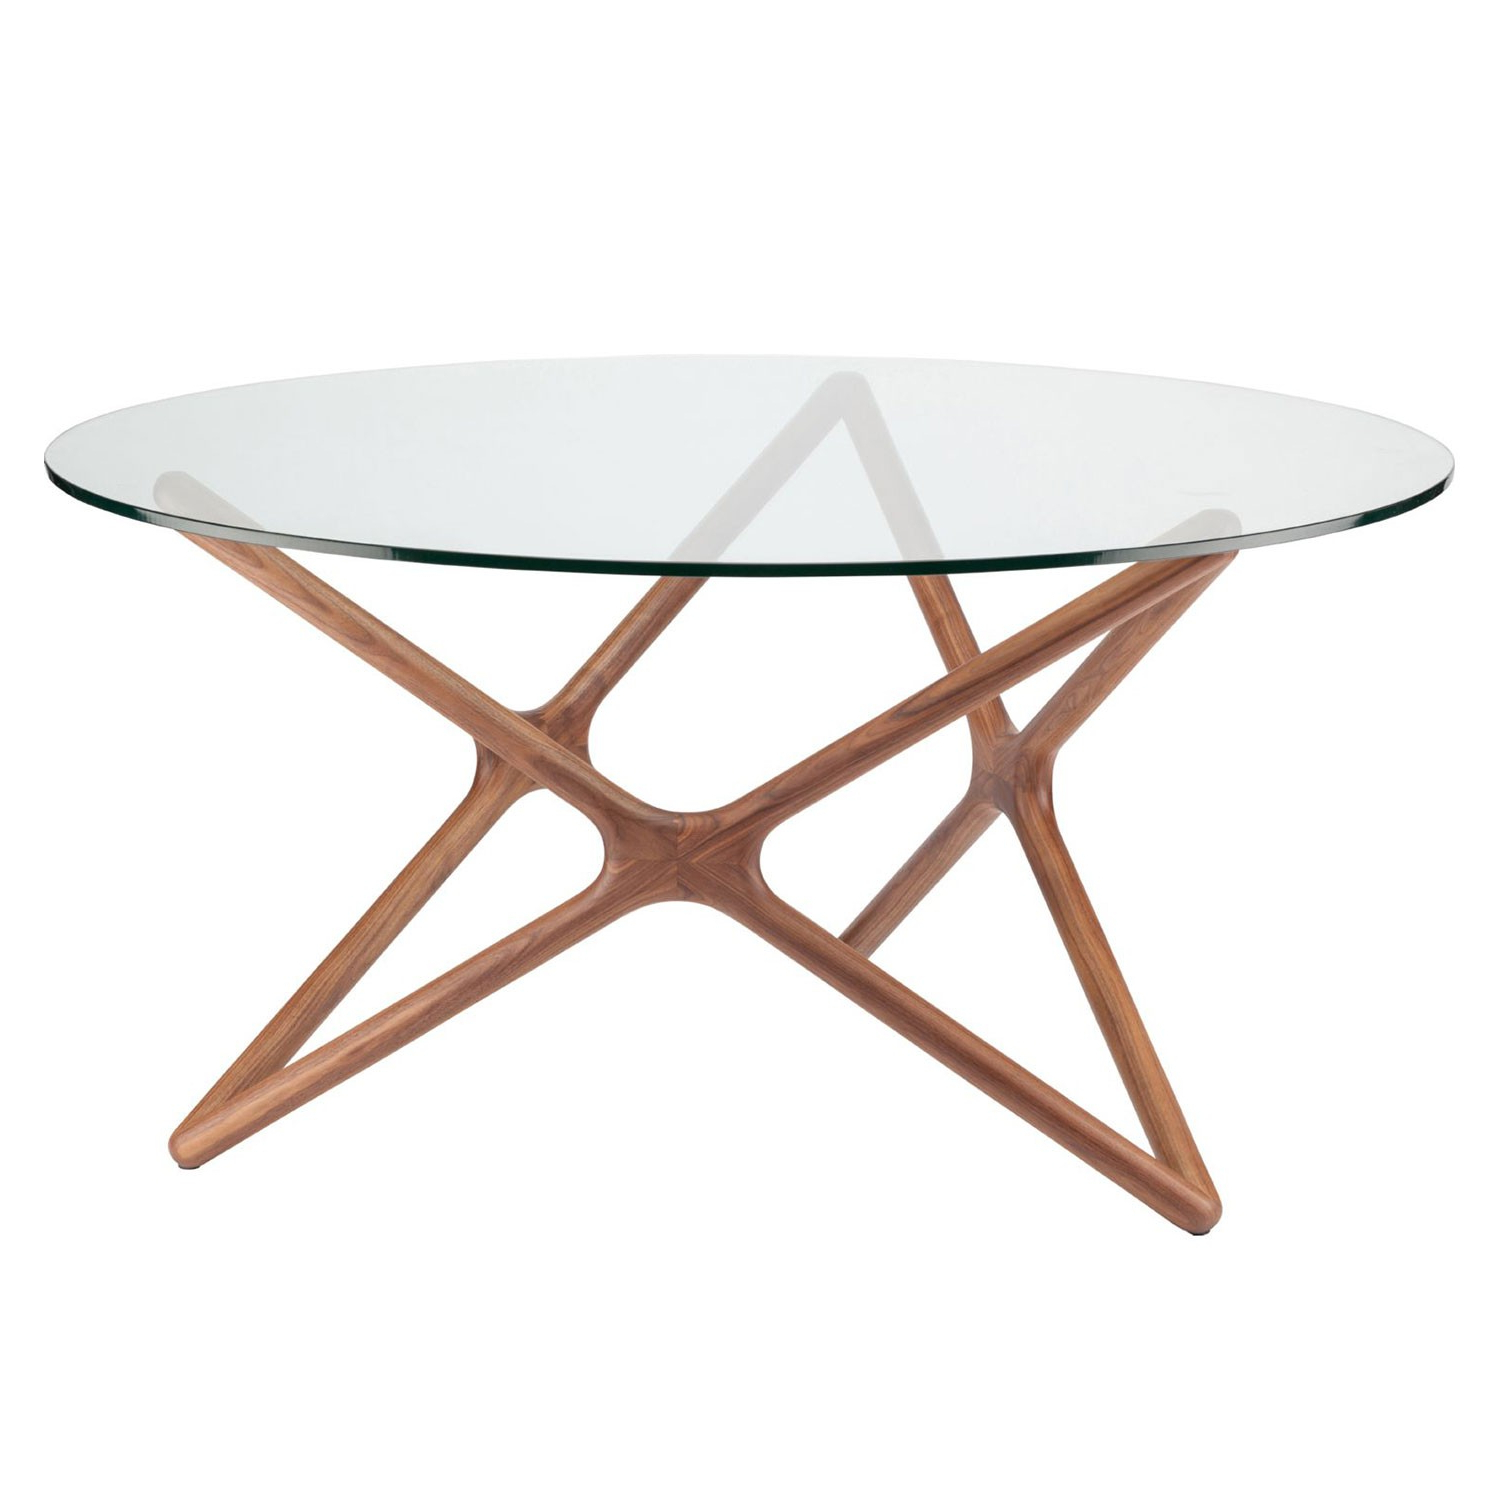 2020 Dining Tables With Stained Ash Walnut in Star Dining Table - Ash Walnut